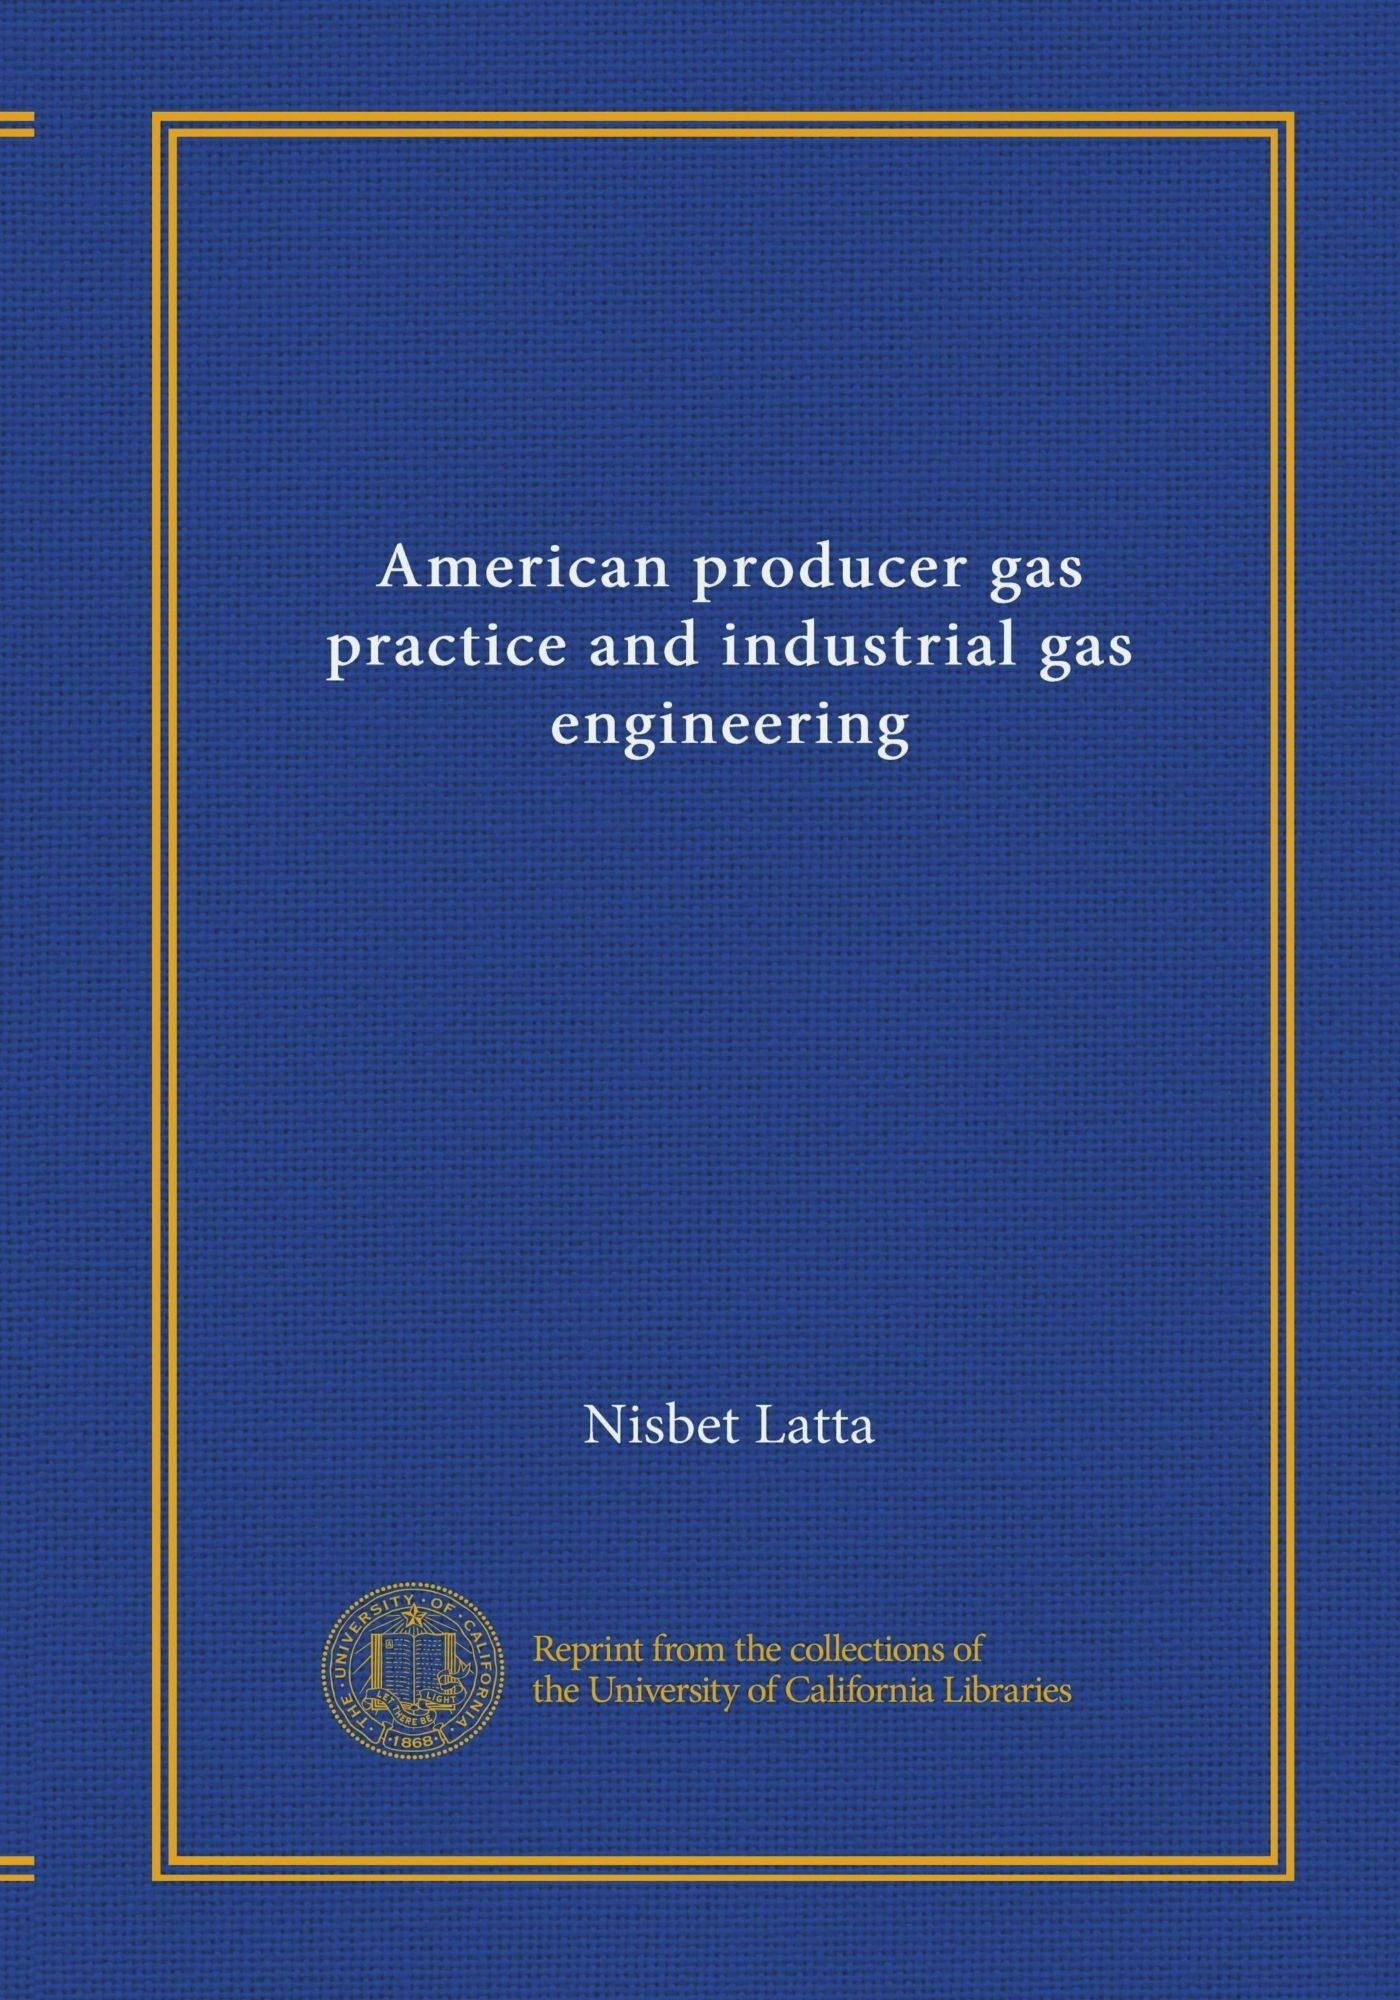 American producer gas practice and industrial gas engineering PDF